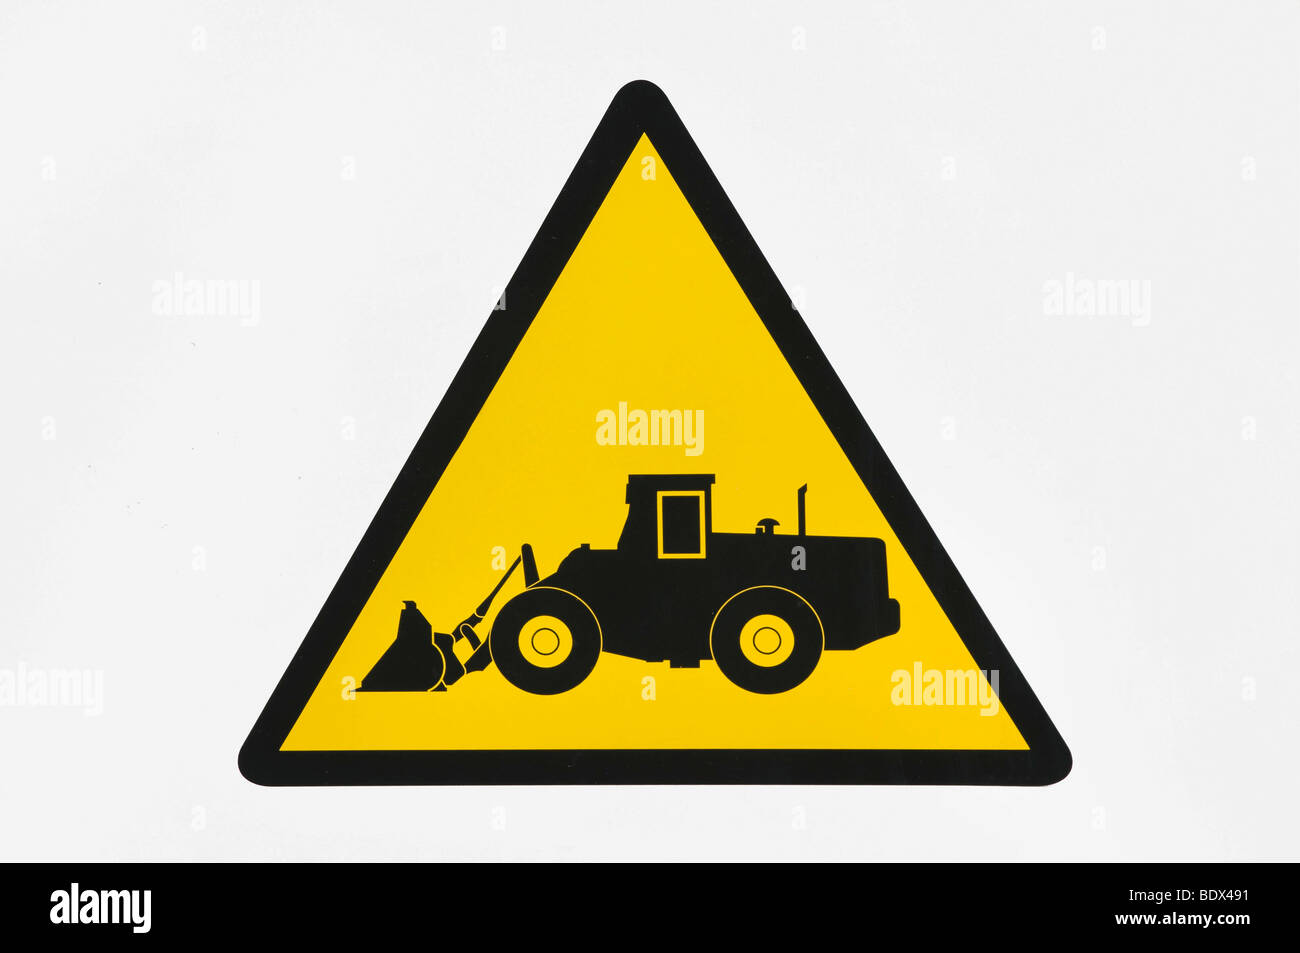 Warning sign, beware of construction vehicles - Stock Image